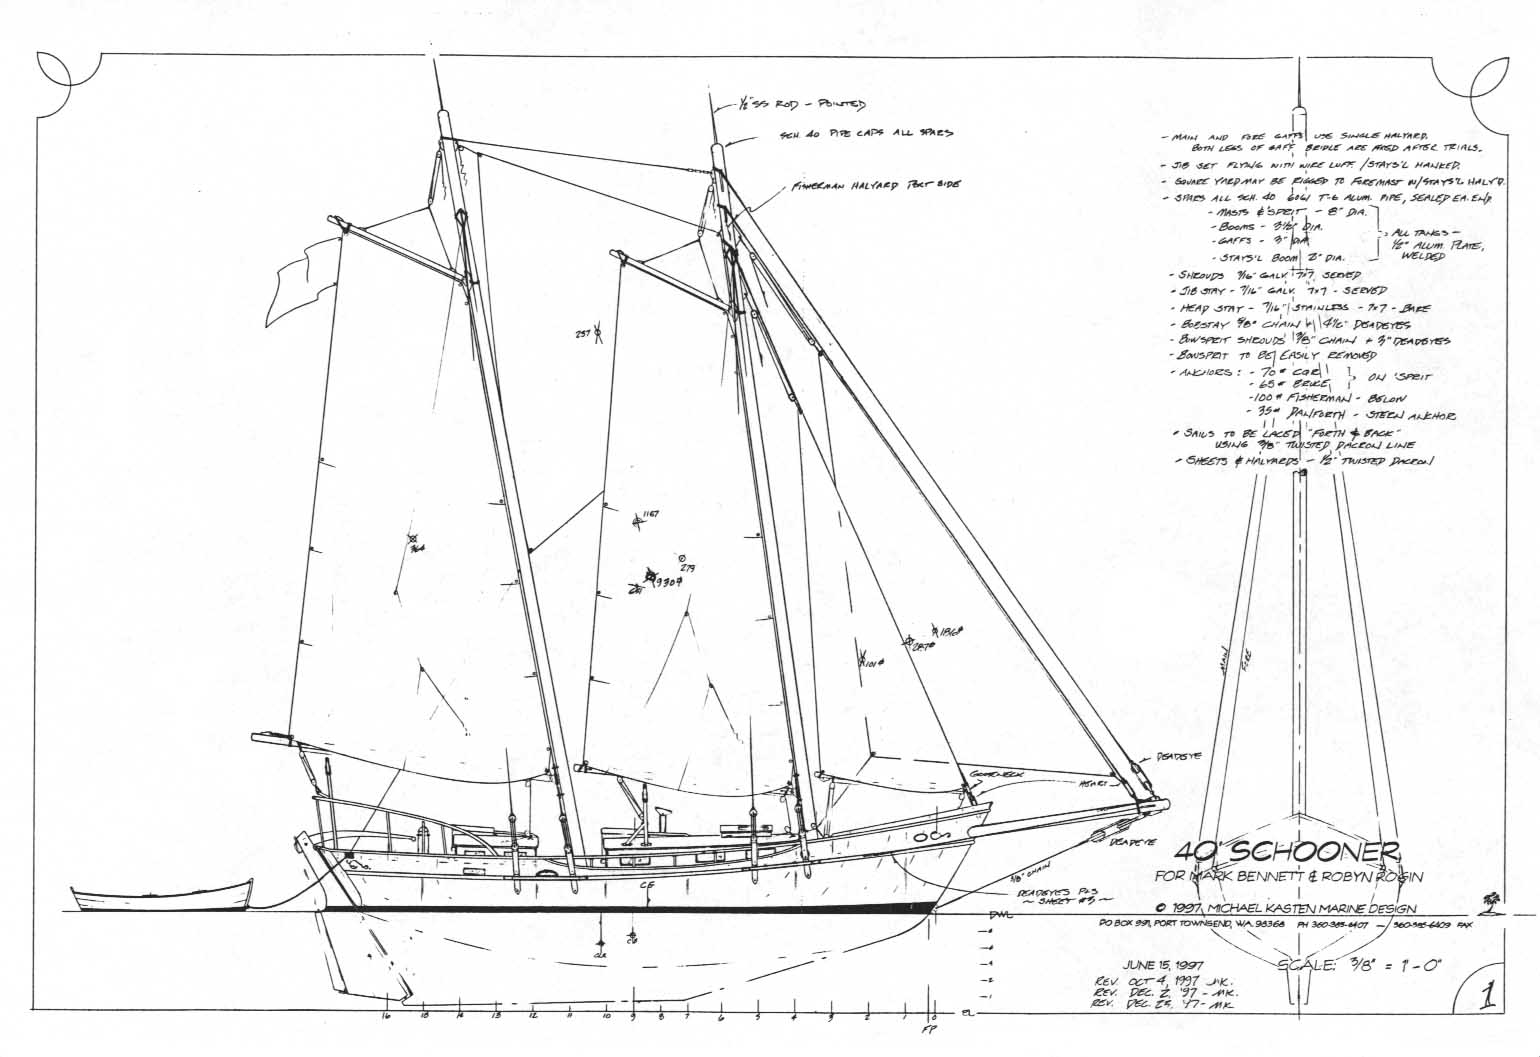 Wood Canoe Plans Schooner Plans Hallett Boats Baron